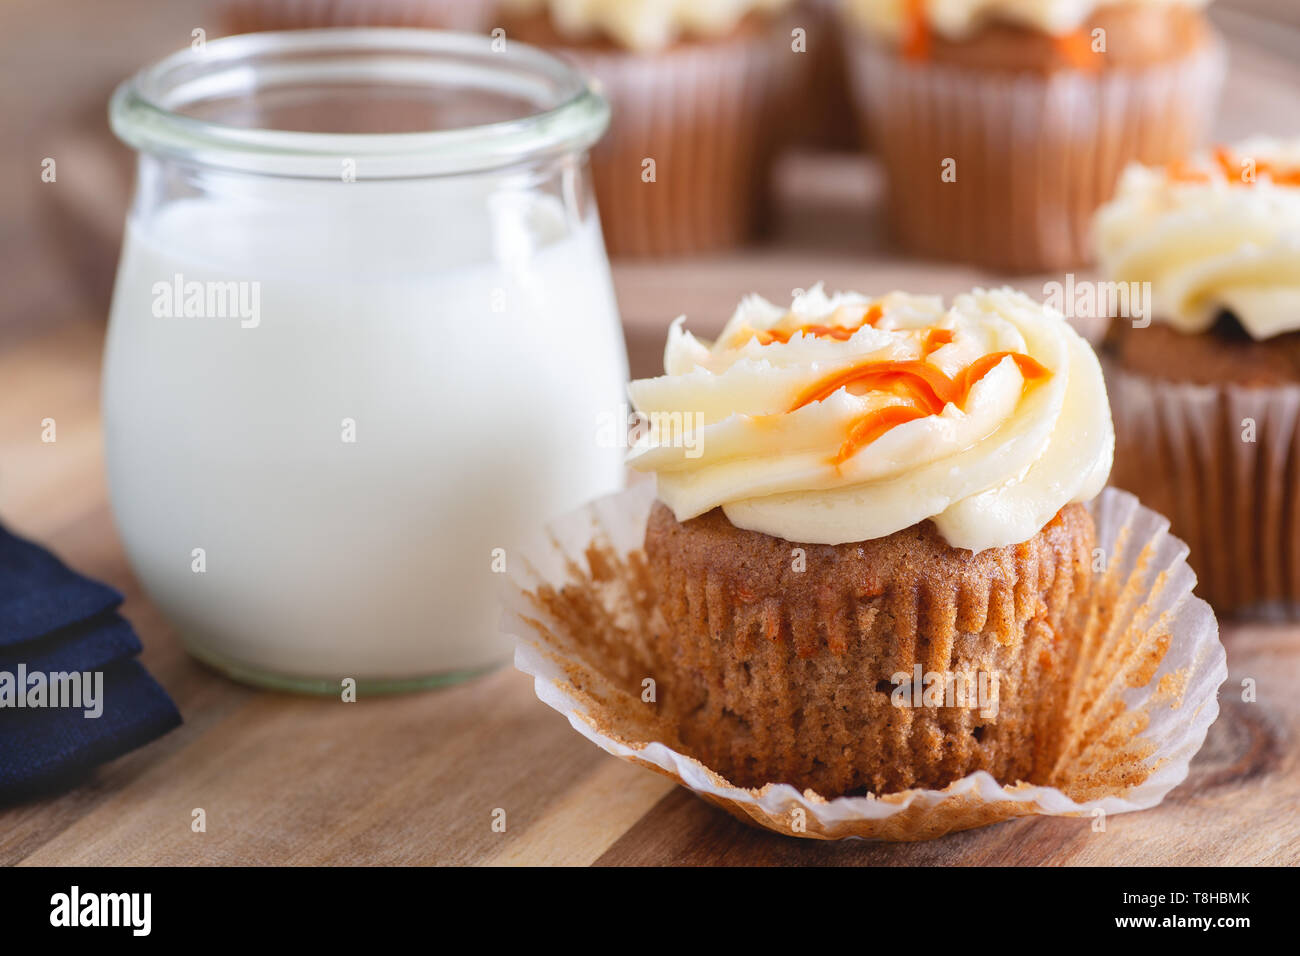 Closeup of carrot cupcake with cream cheese icing and glass of milk and cupcakes in background - Stock Image